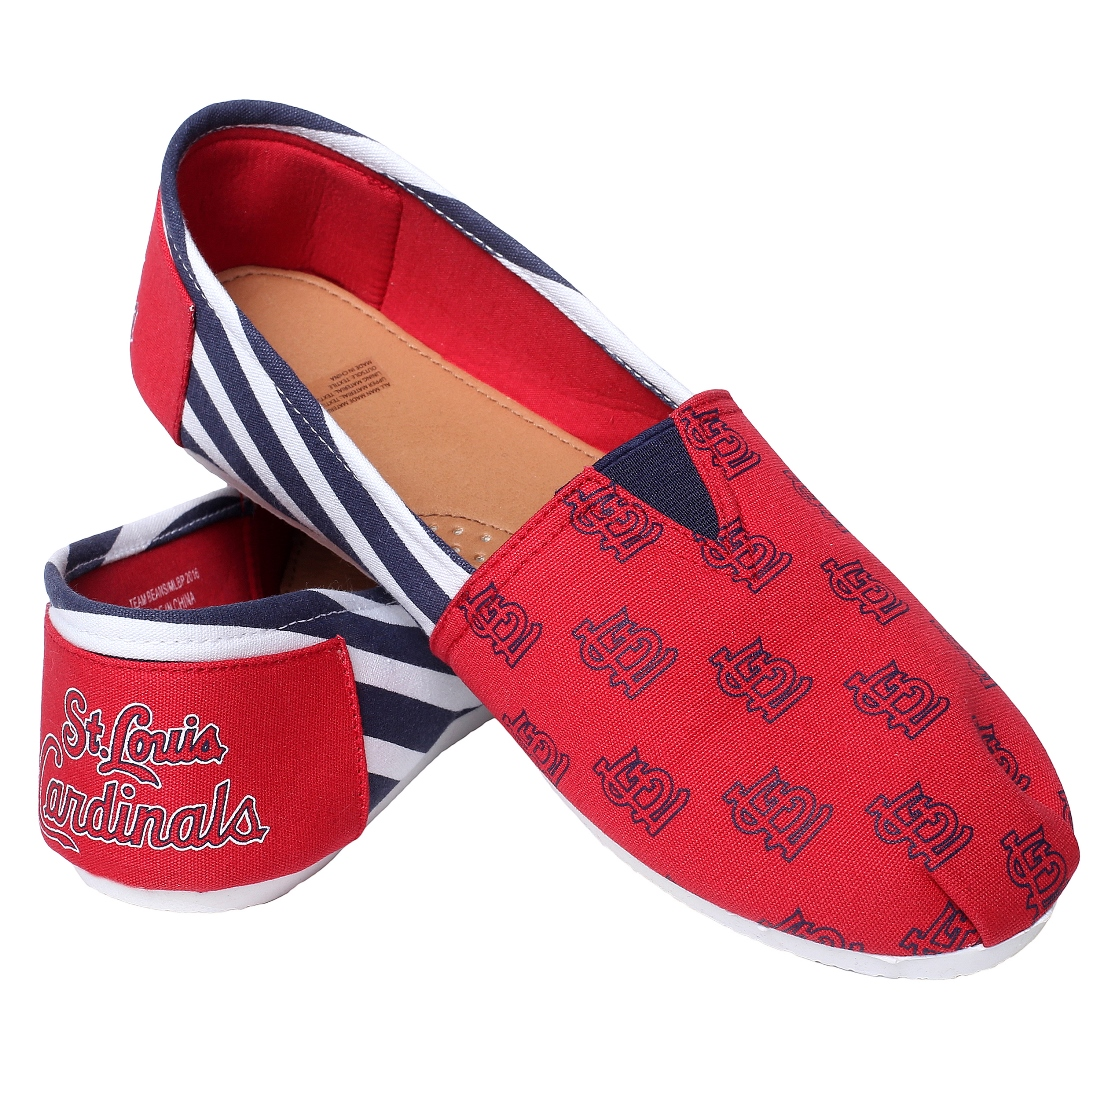 St. Louis Cardinals Women's MLB Slip On Canvas Stripe Shoe Slippers